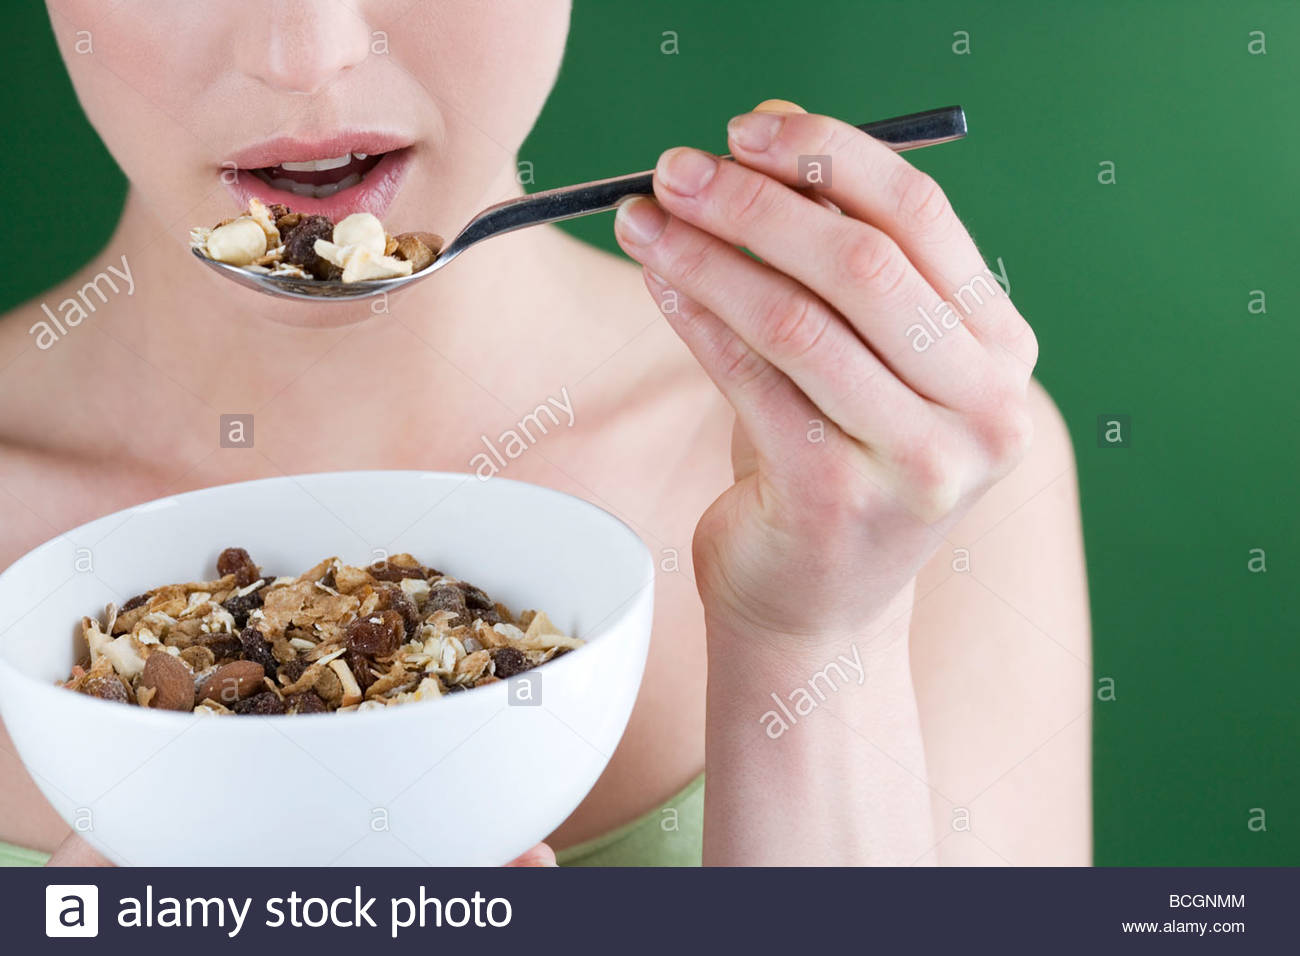 A woman eating muesli, close-up - Stock Image